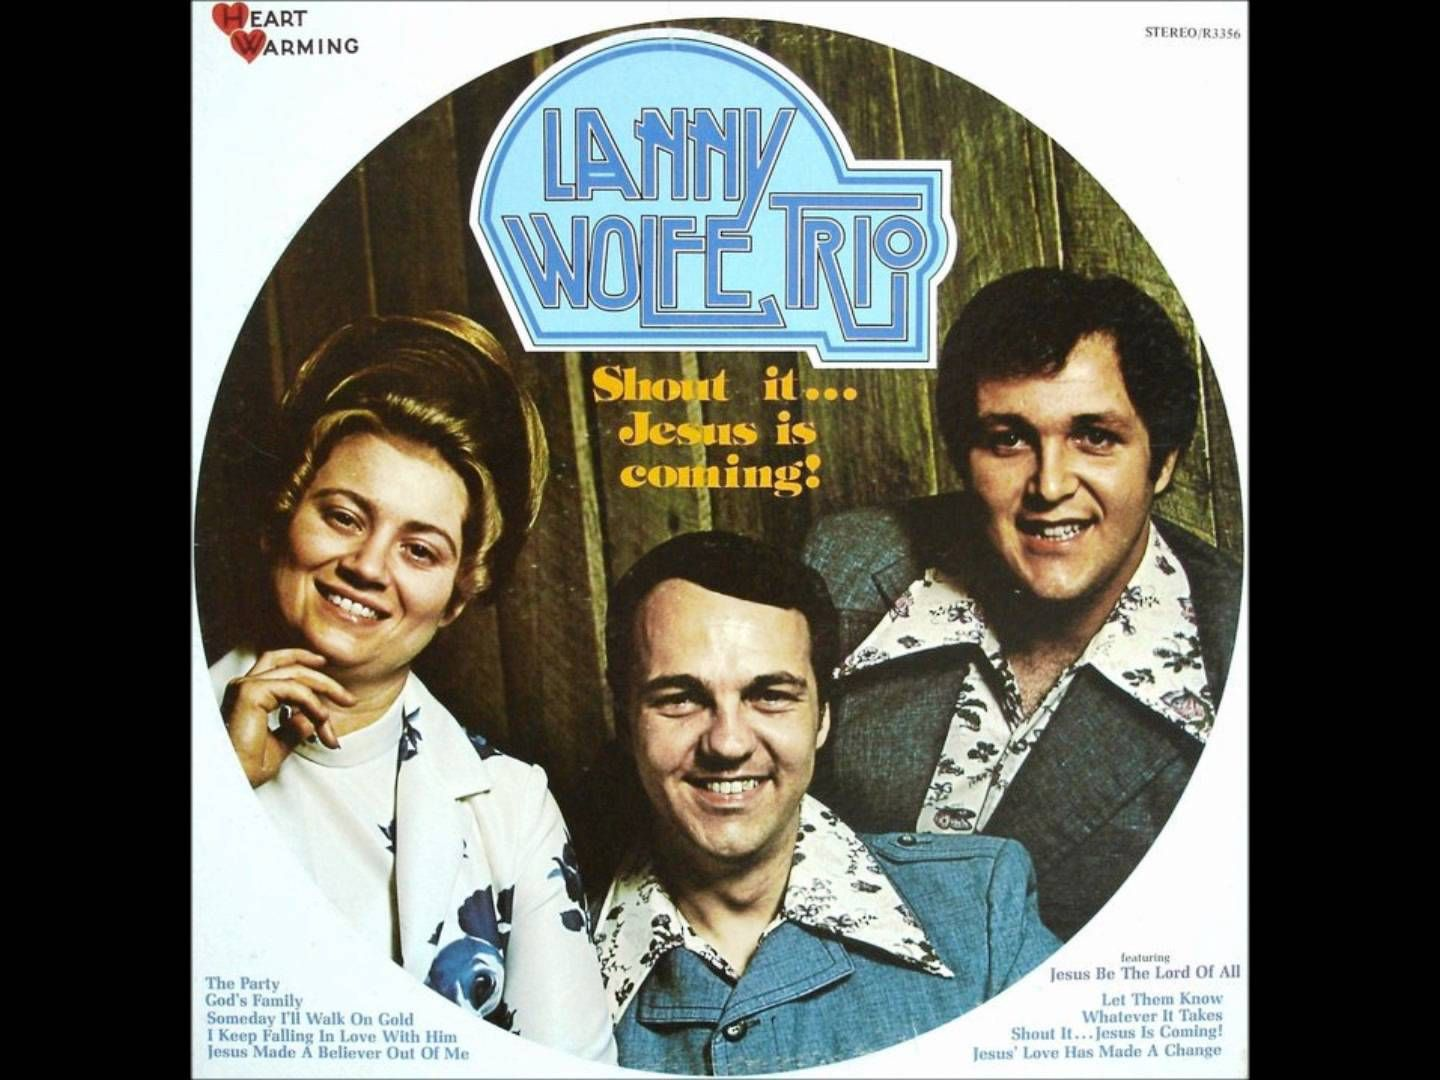 Lanny Wolfe Trio - Whatever It Takes- Back in the day the Hunt ...